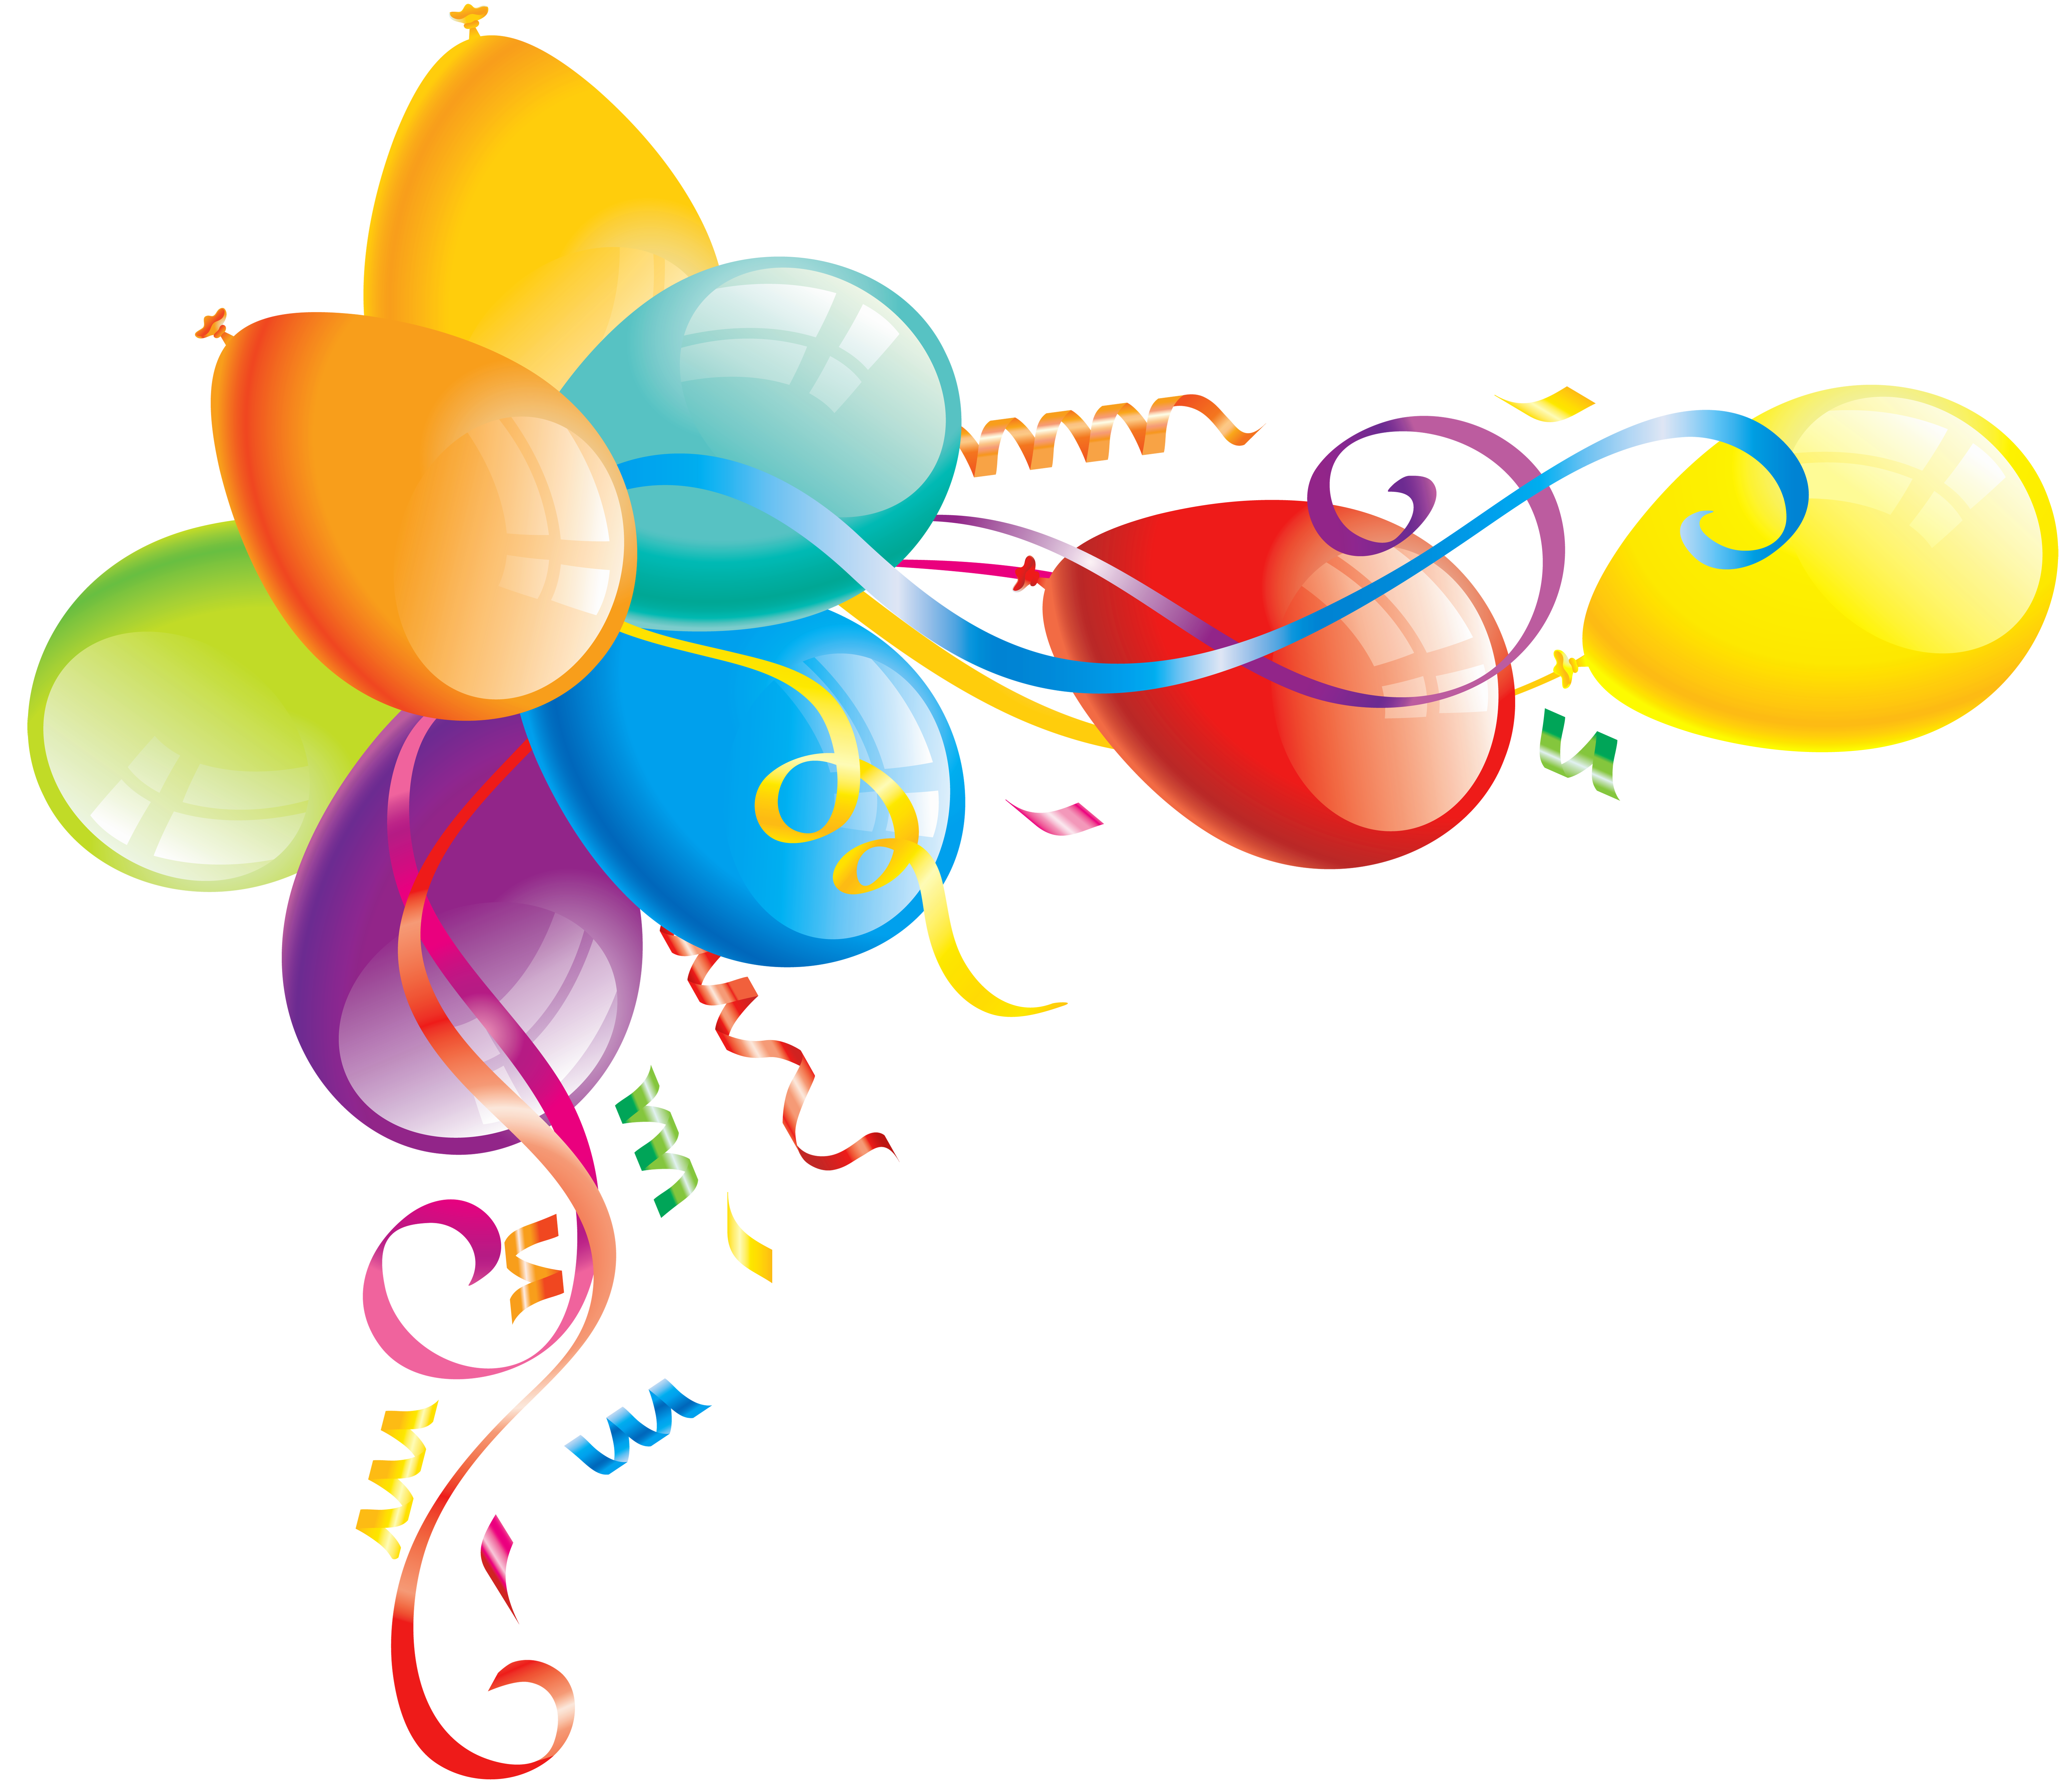 Balloon clipart png. Large transparent balloons gallery